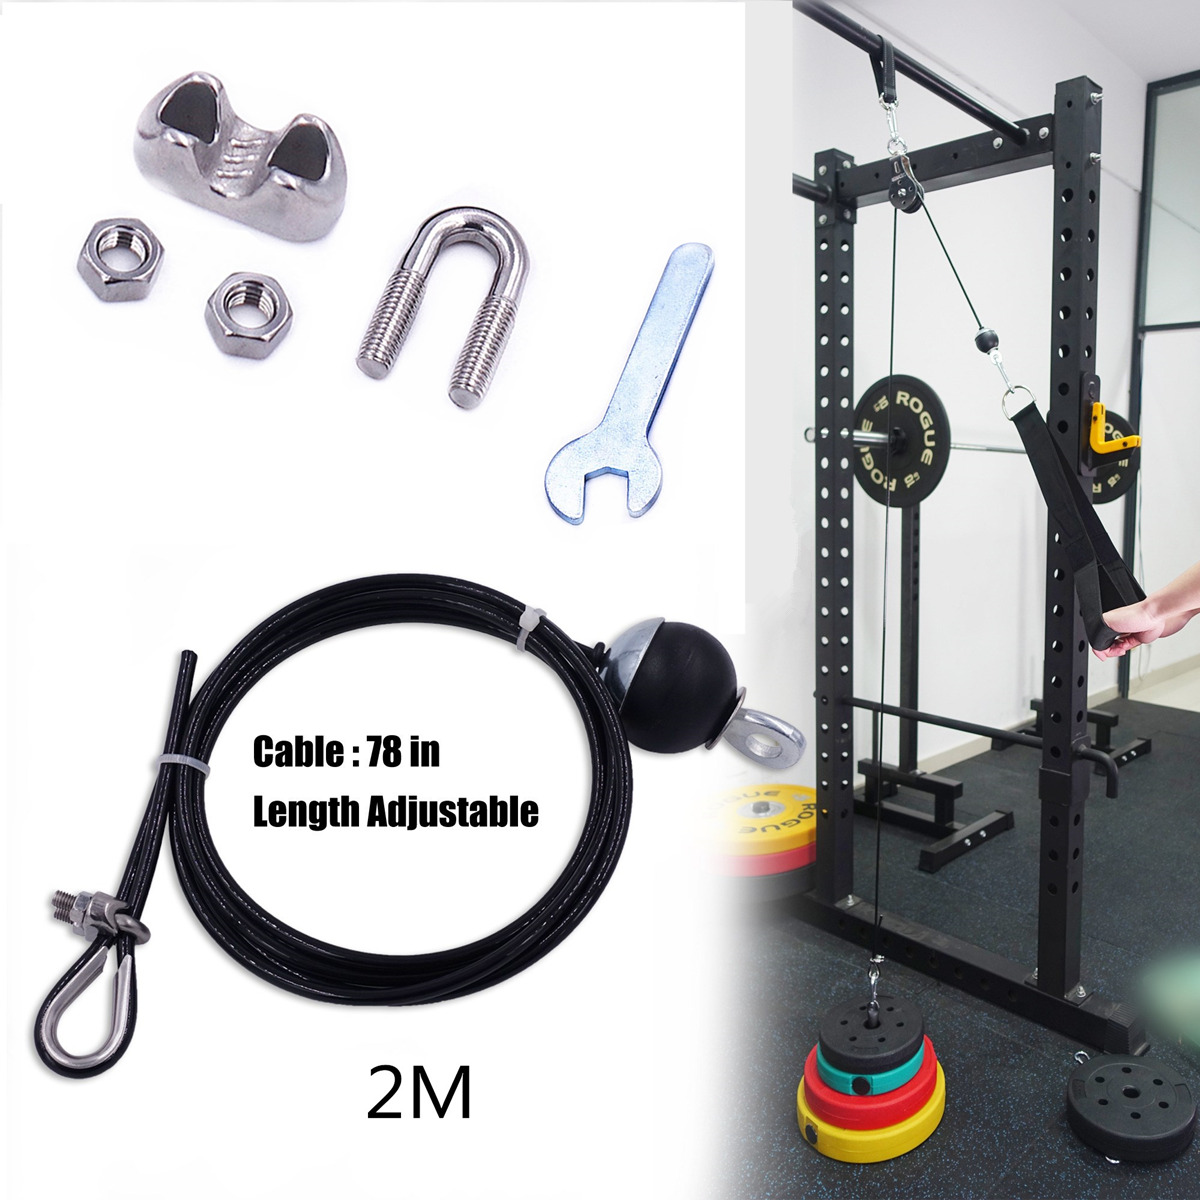 Galleria fotografica 2M Gym Cable Fitness Pulley Length Adjustable Heavy Duty Steel Wire Rope Thick 5mm for Home Gym Cable Machin Workout Accessories